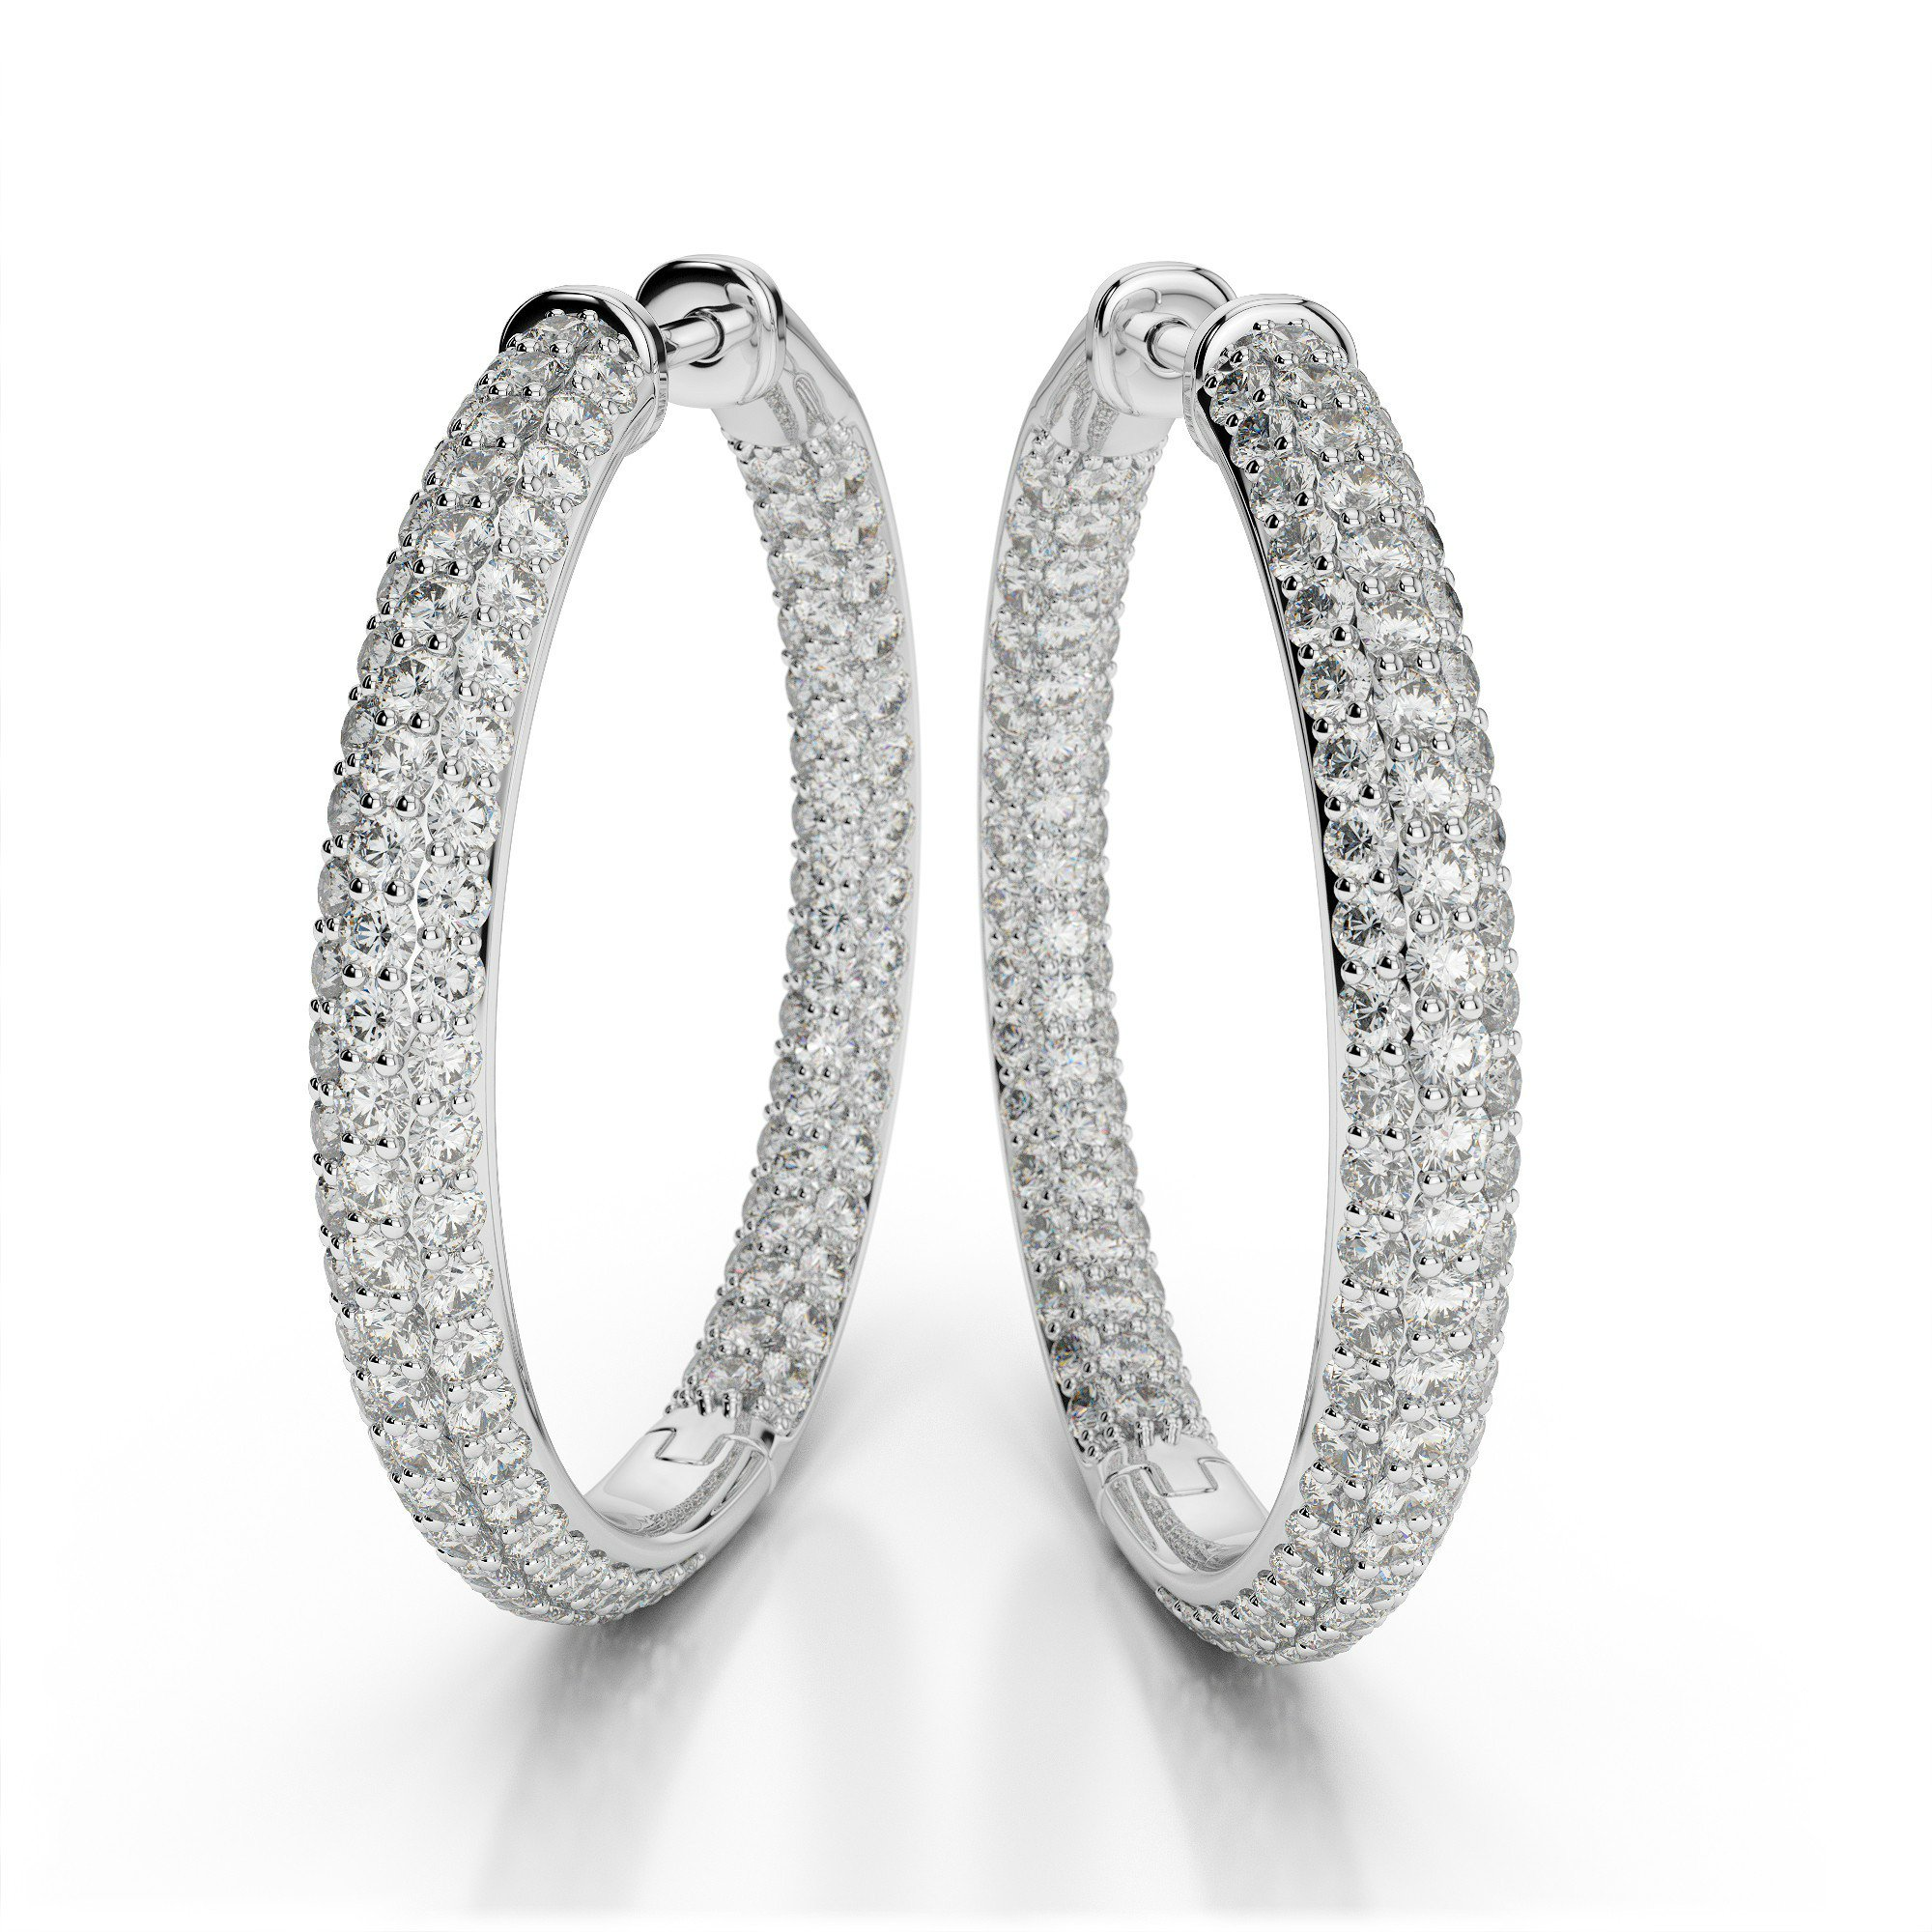 1.20 Carat Diamond Pave Hoop Earrings